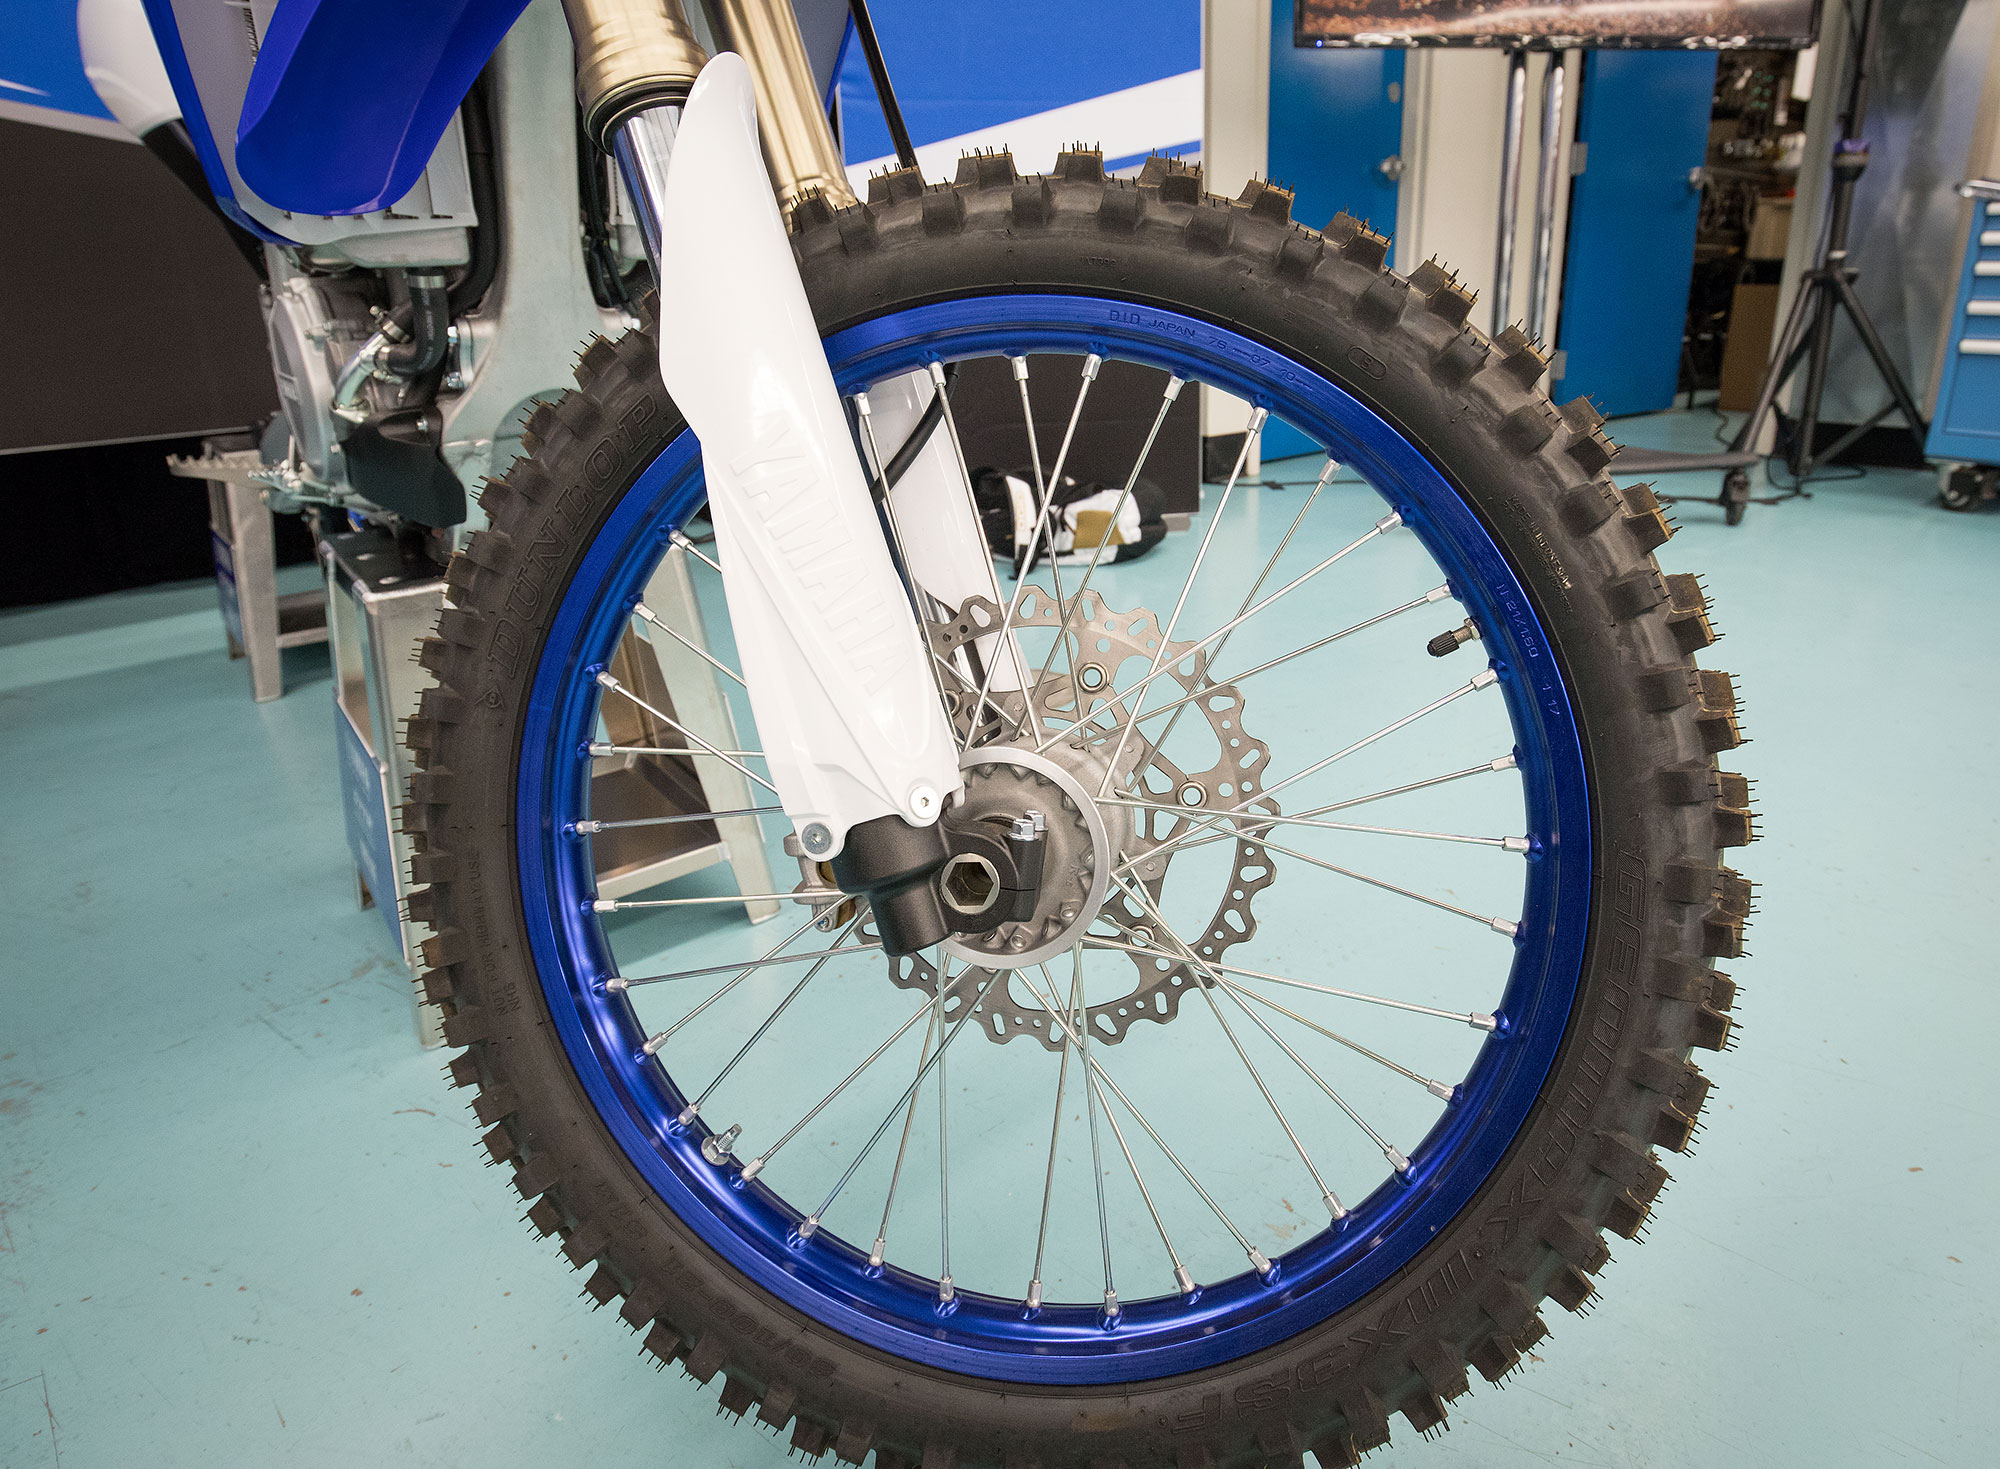 The blue wheels have more of a flat look to them than a glossy blue color.